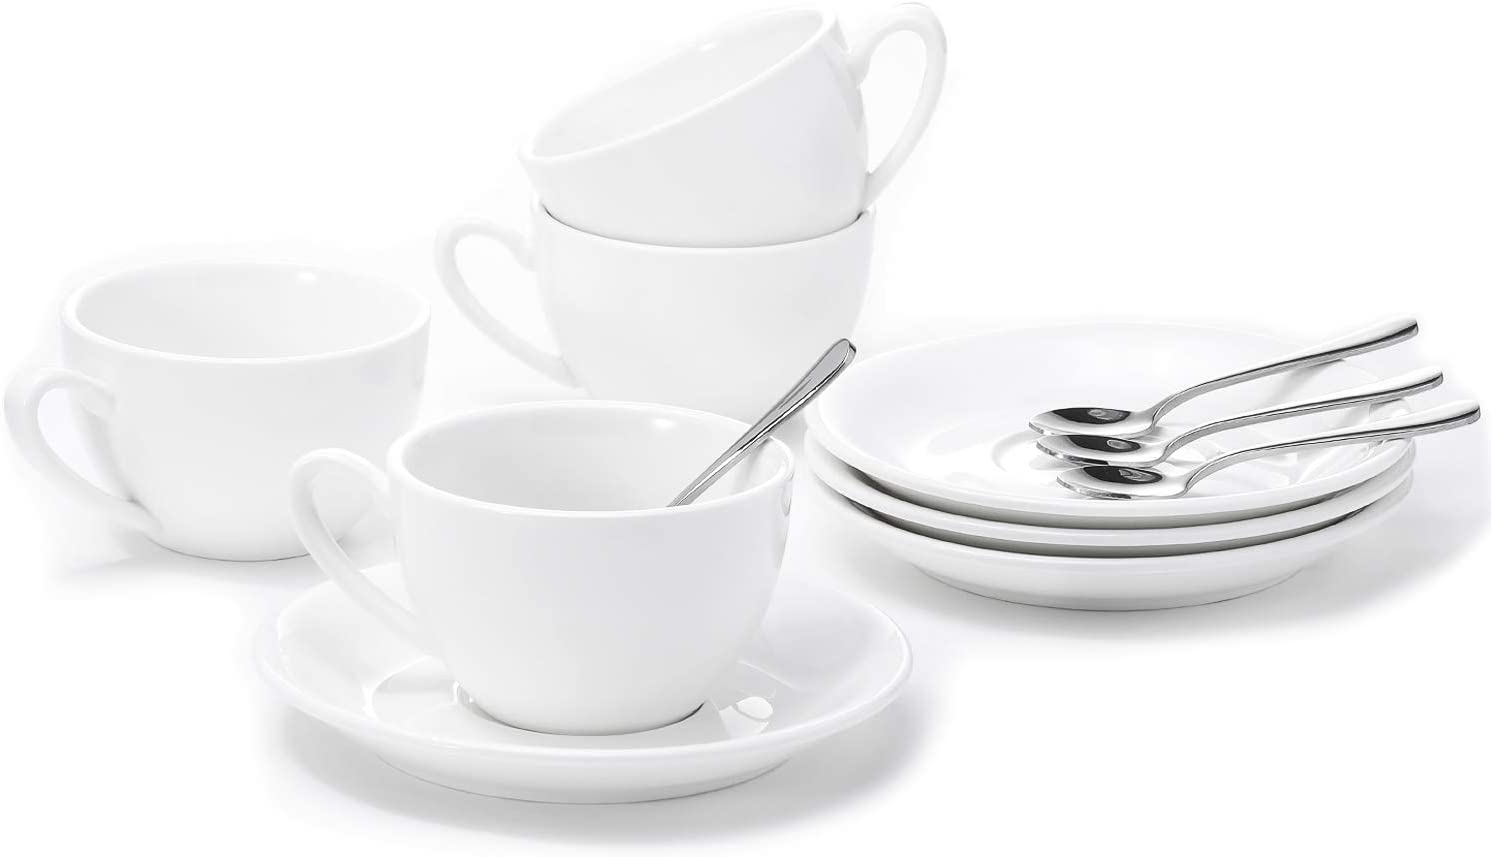 Aozita Porcelain Cappuccino Cups and Saucers